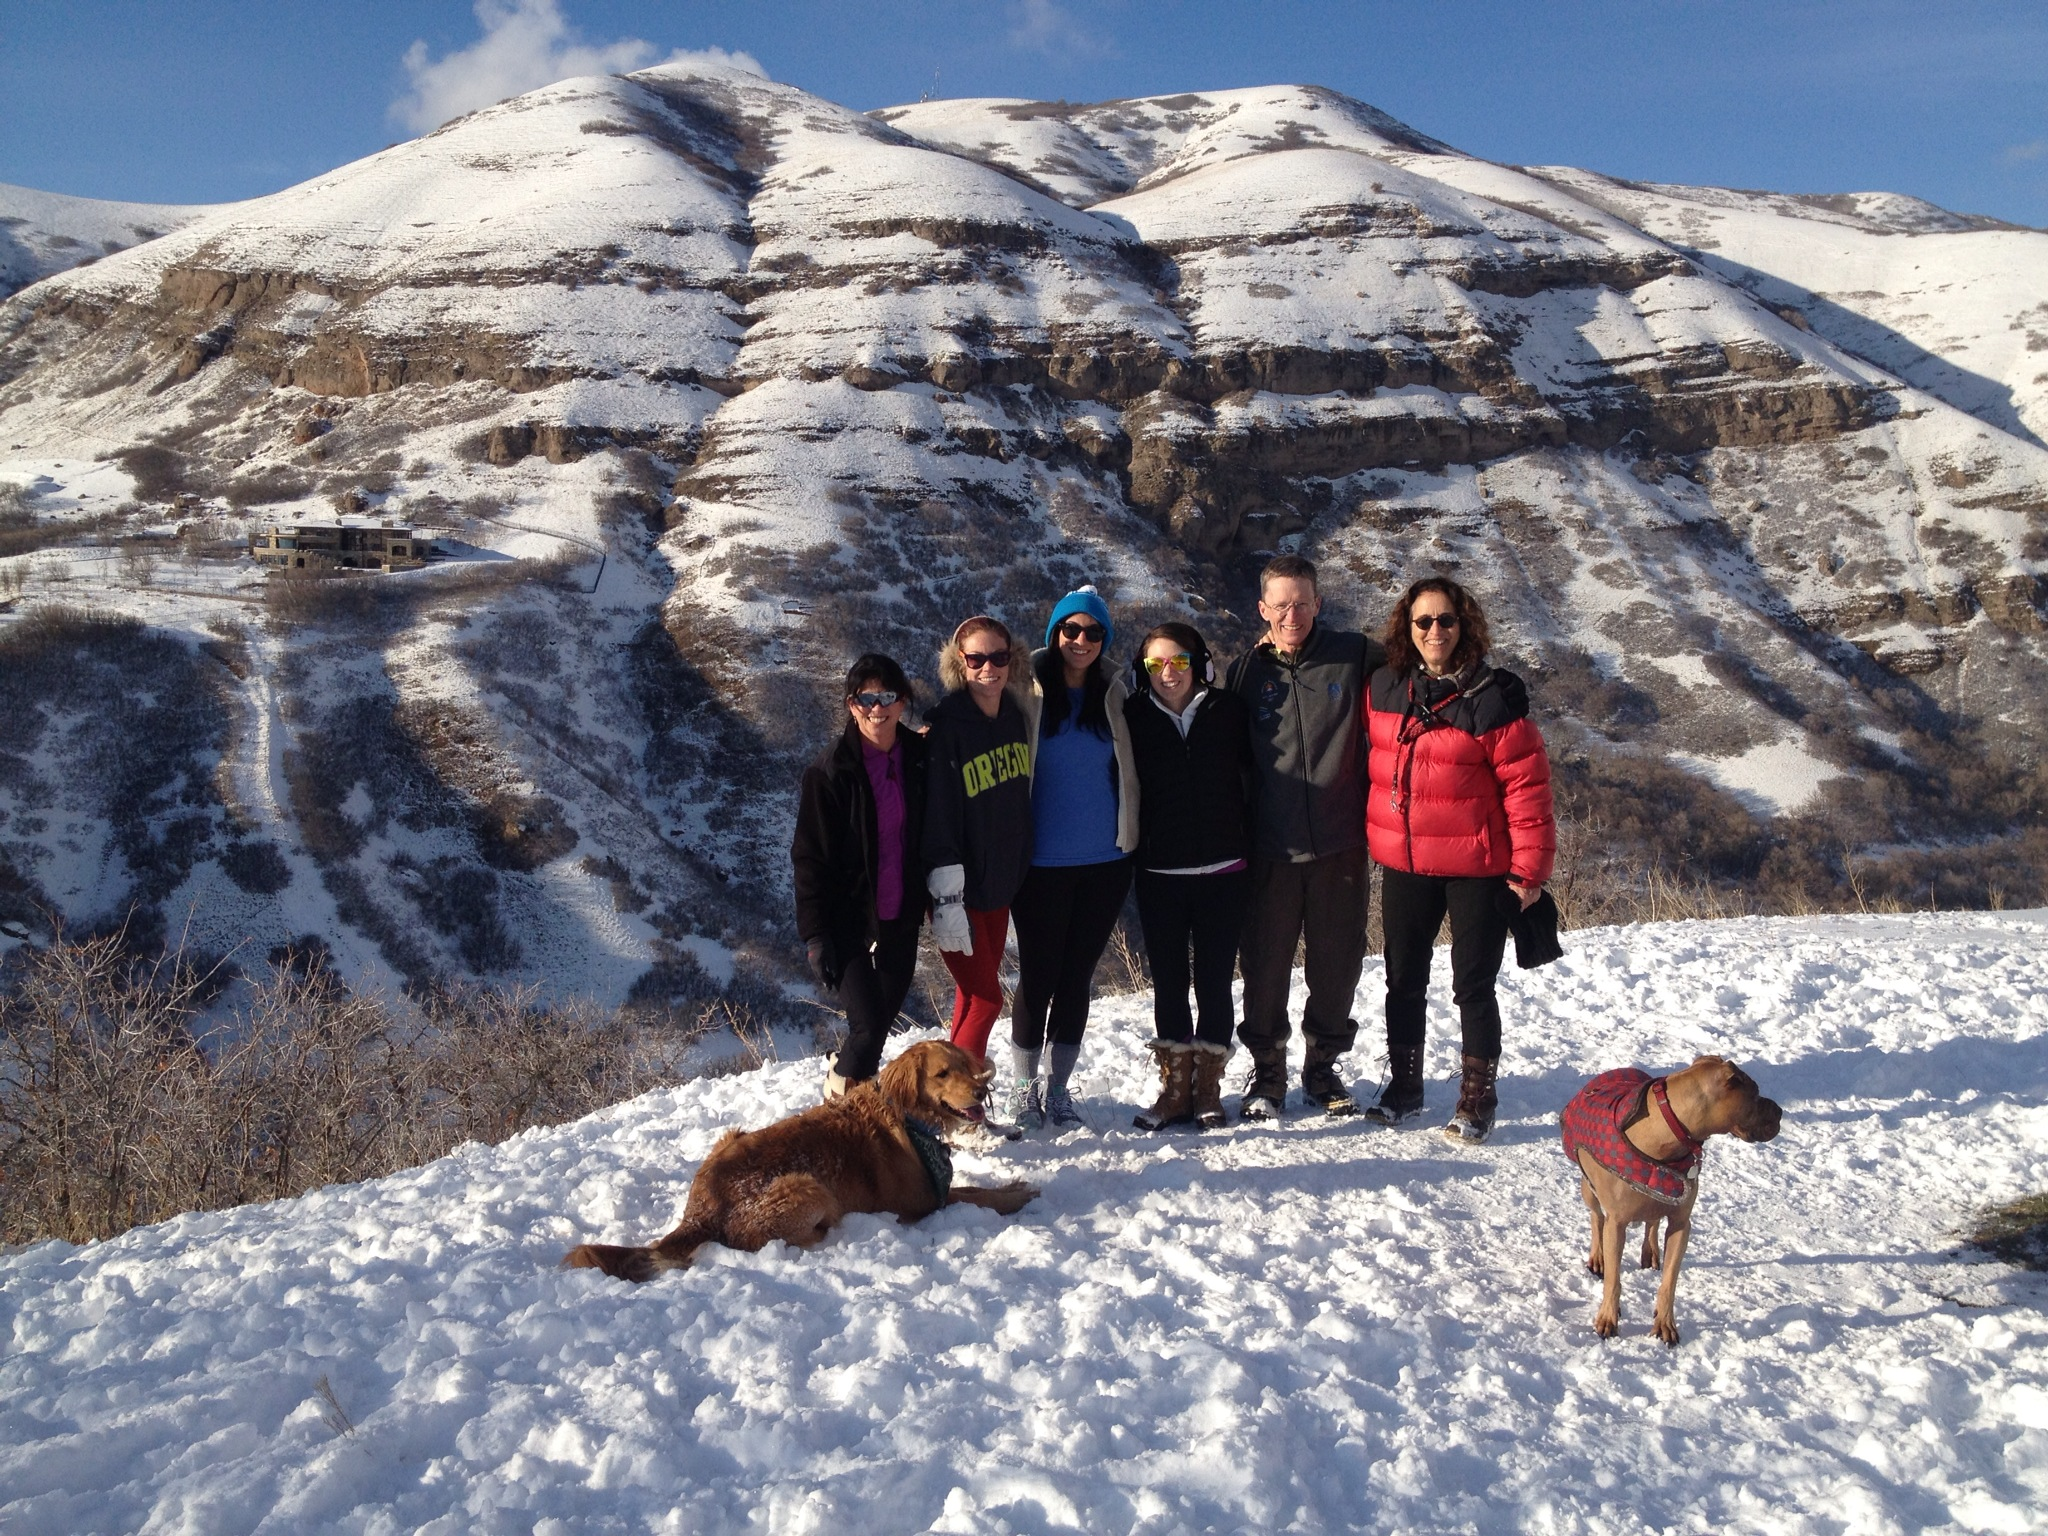 Hiking with the Walsh clan on Xmas day.